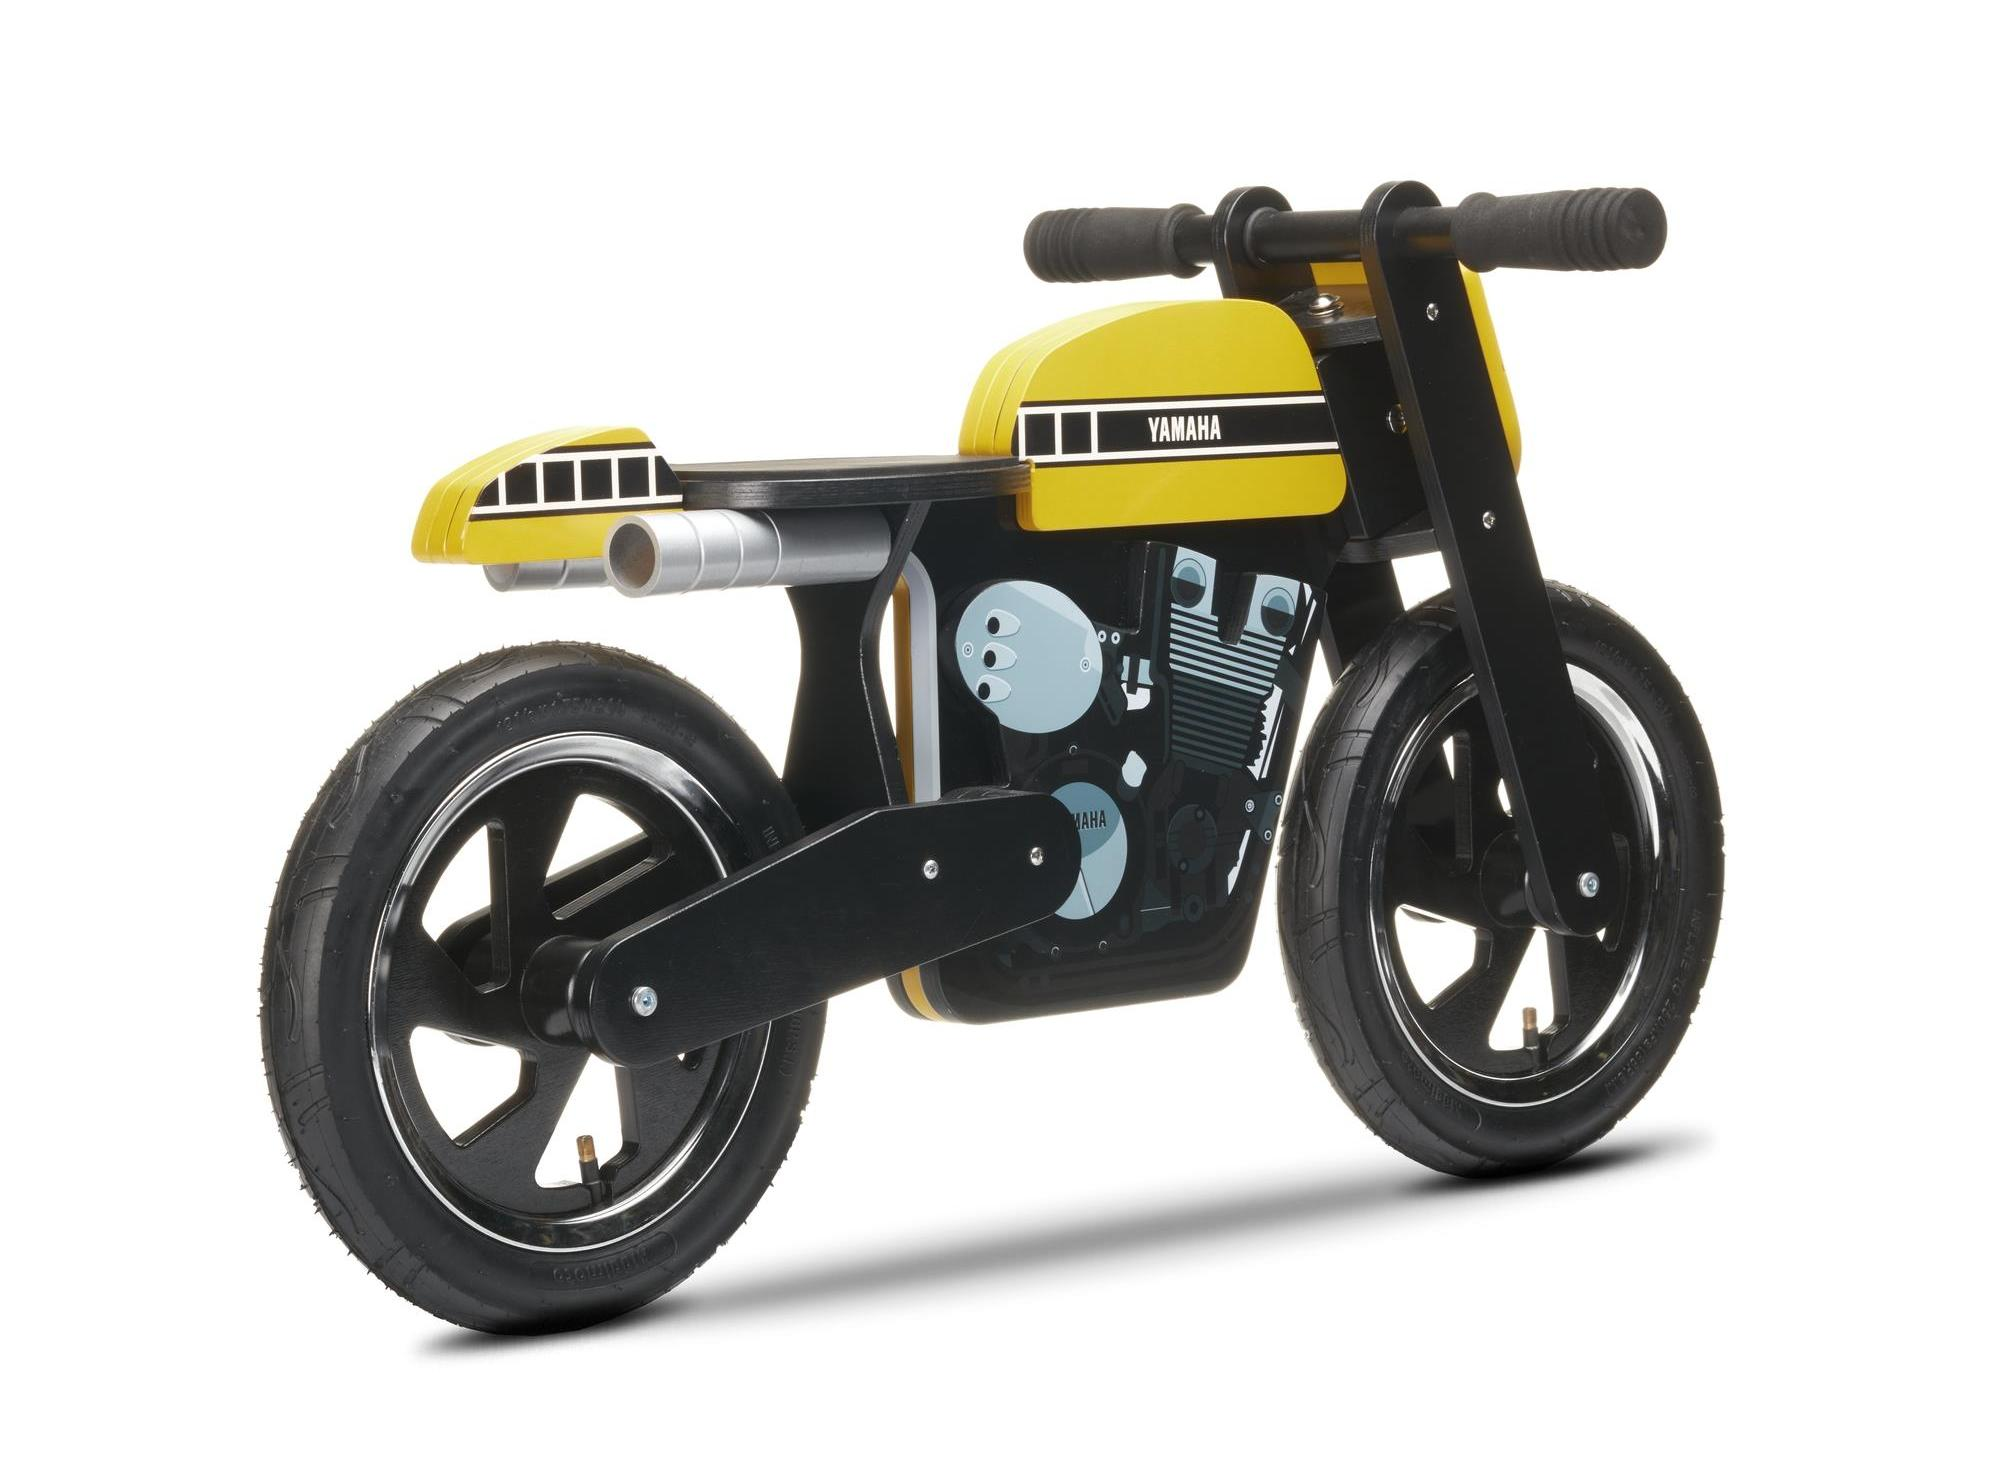 Yamaha Kids Cafe Racer Balance Bike Also Comes In 60th